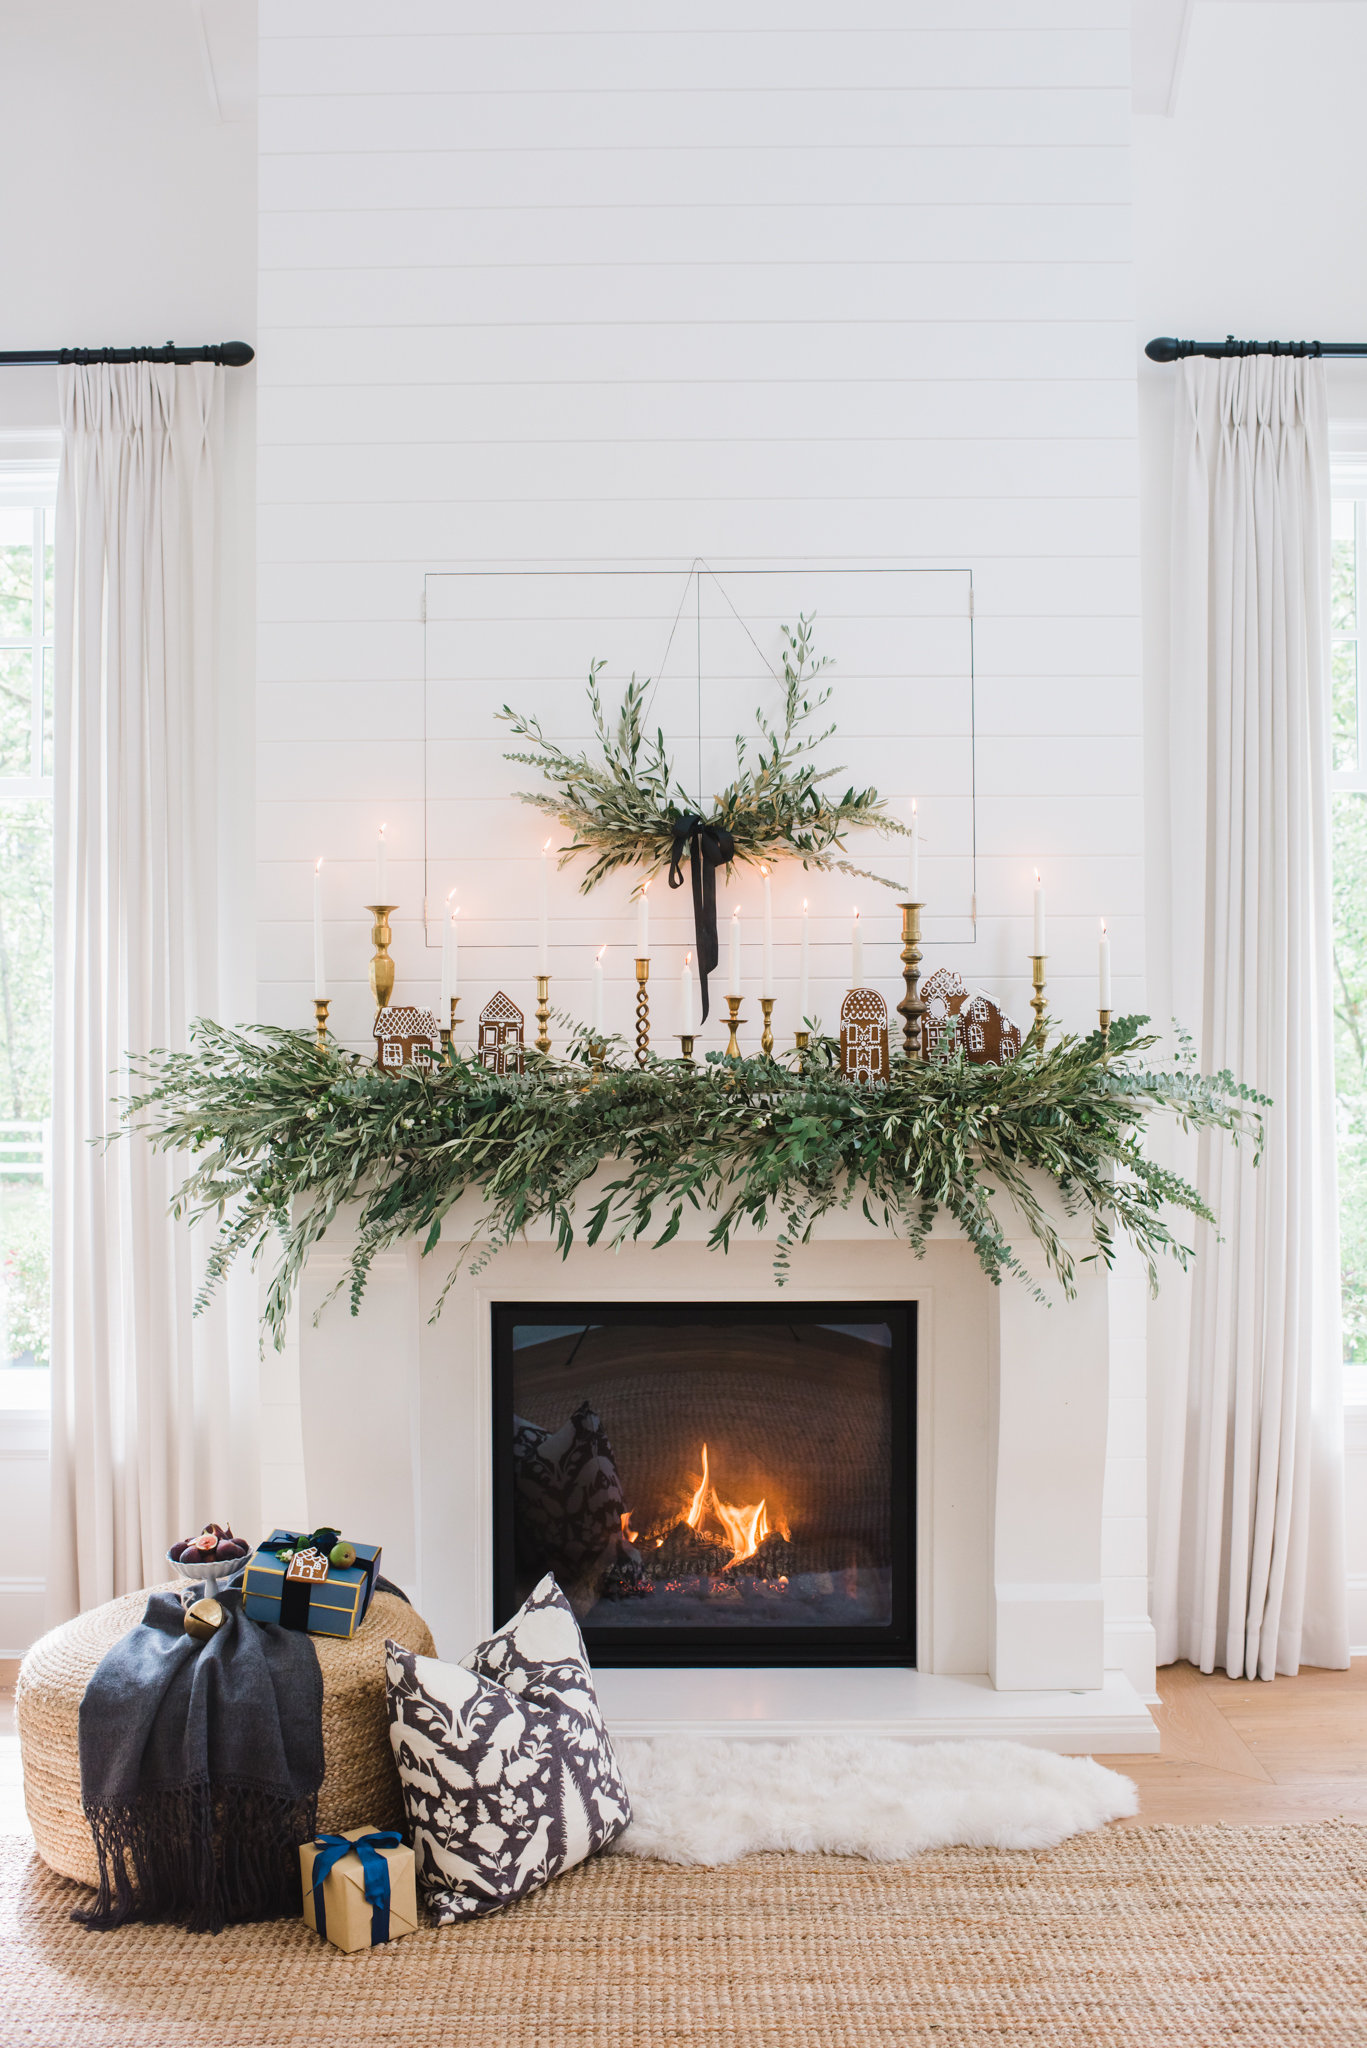 Fireplace with olive branch garland